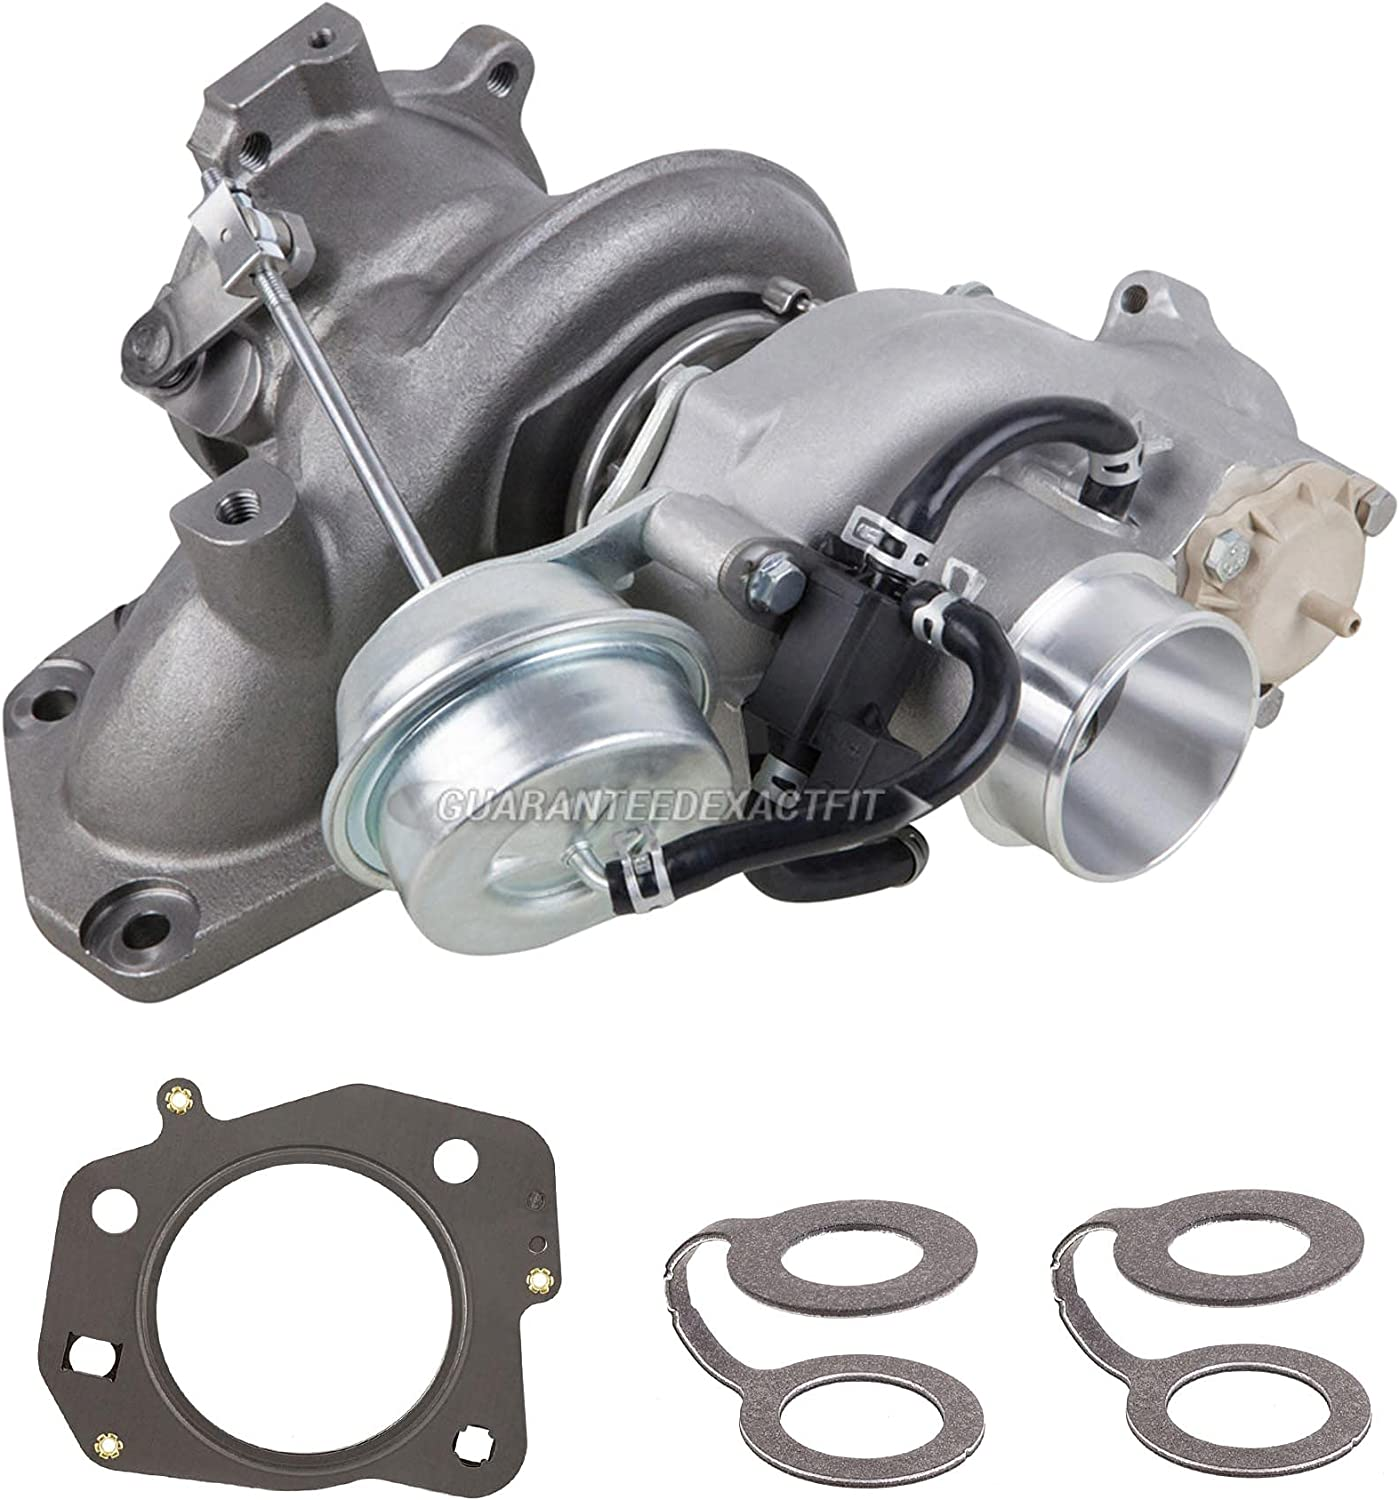 BuyAutoParts Turbo Kit w Cheap mail order Classic shopping Stigan Chevy Gaskets Turbocharger For